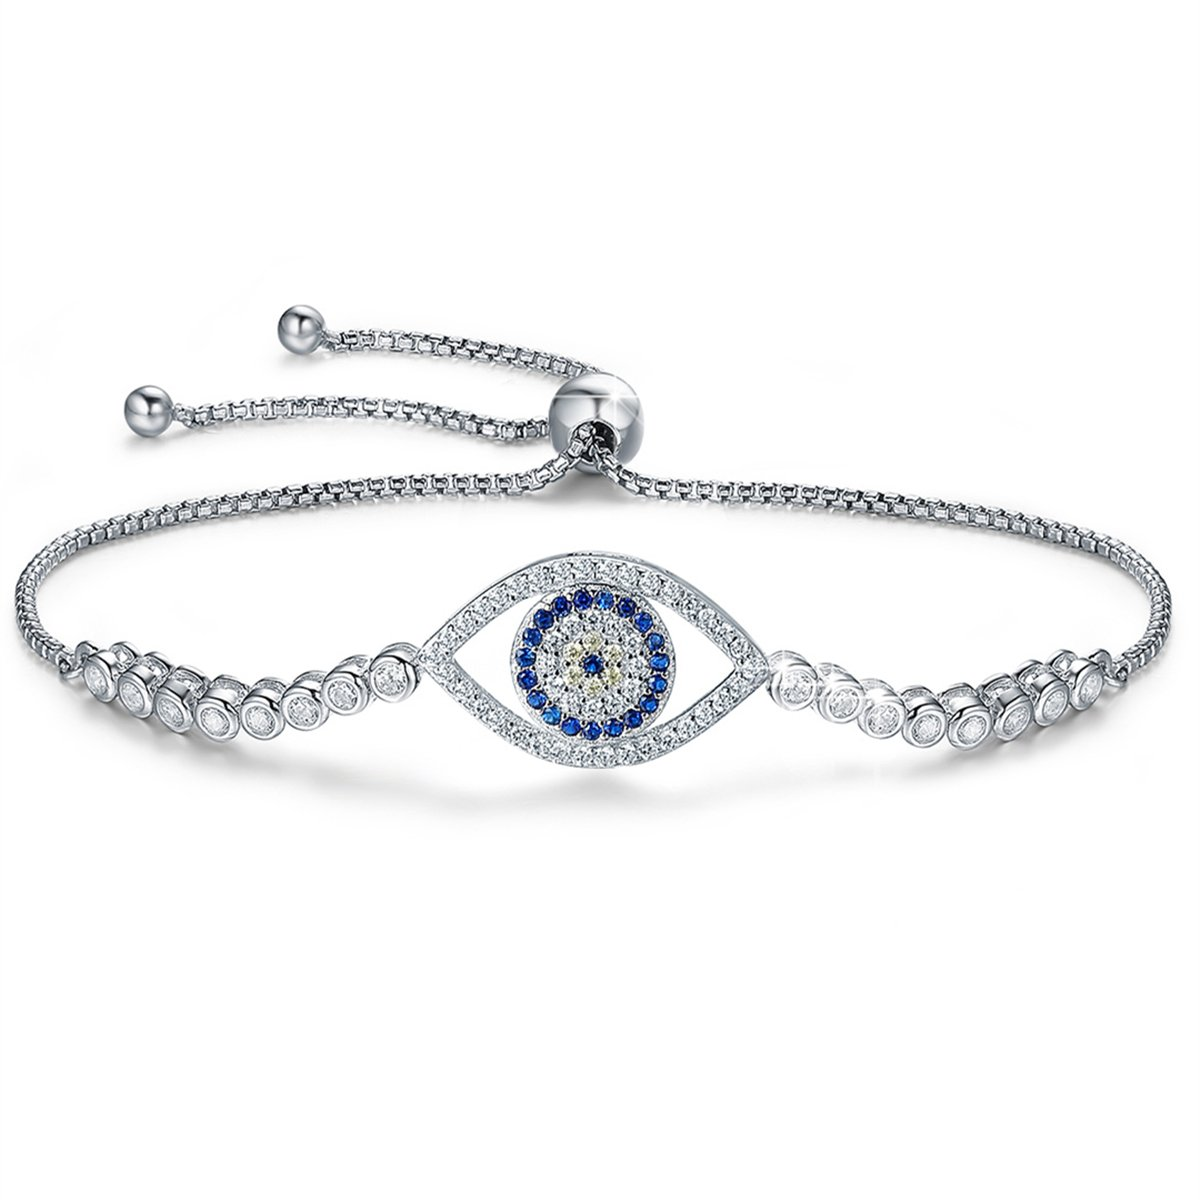 BAMOER 925 Sterling Silver Expandable Lucky Blue Evil Eye Chain Bracelet with Sparkling Cubic Zirconia for Women Girls Style 6